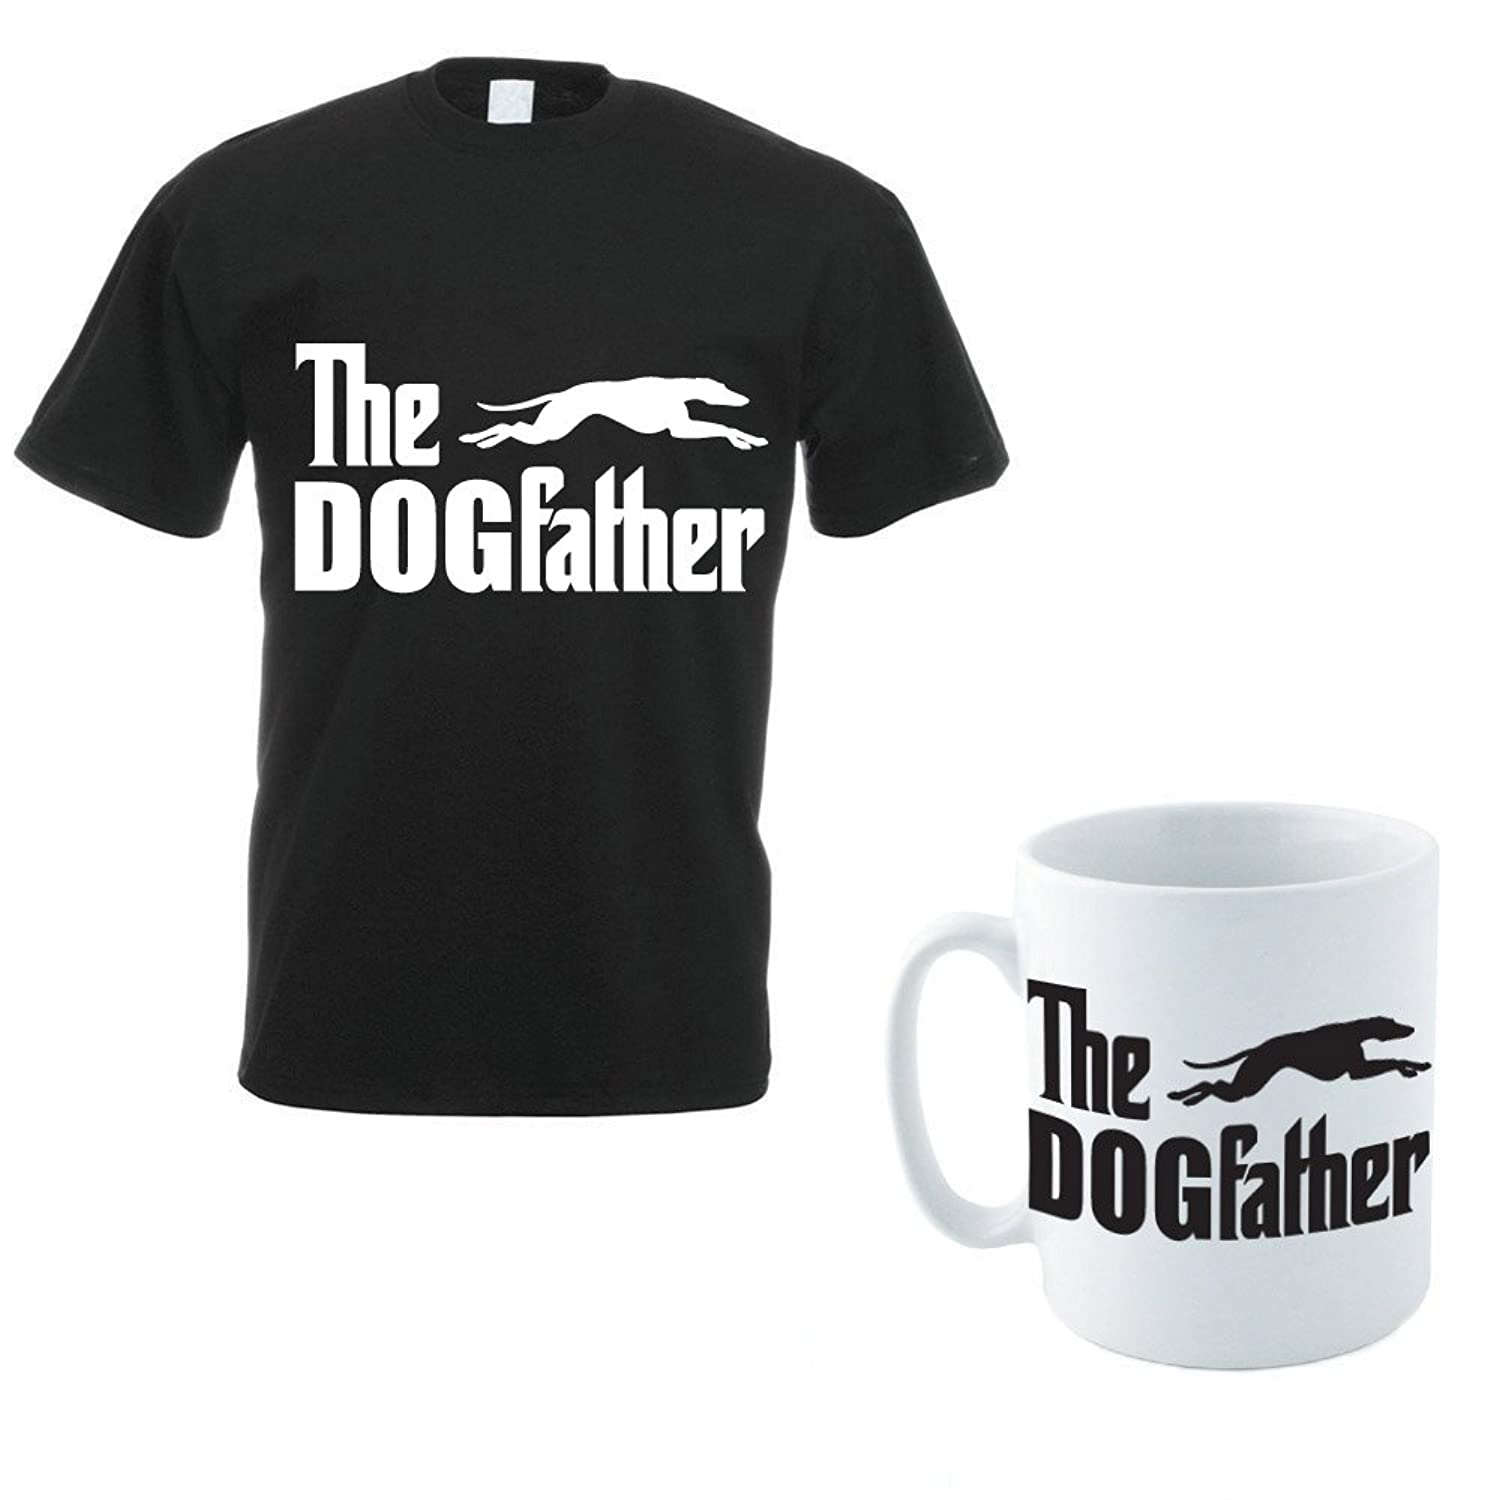 THE DOGFATHER - Greyhound / Lurcher / Funny / Gift Men's T-Shirt and Mug Set